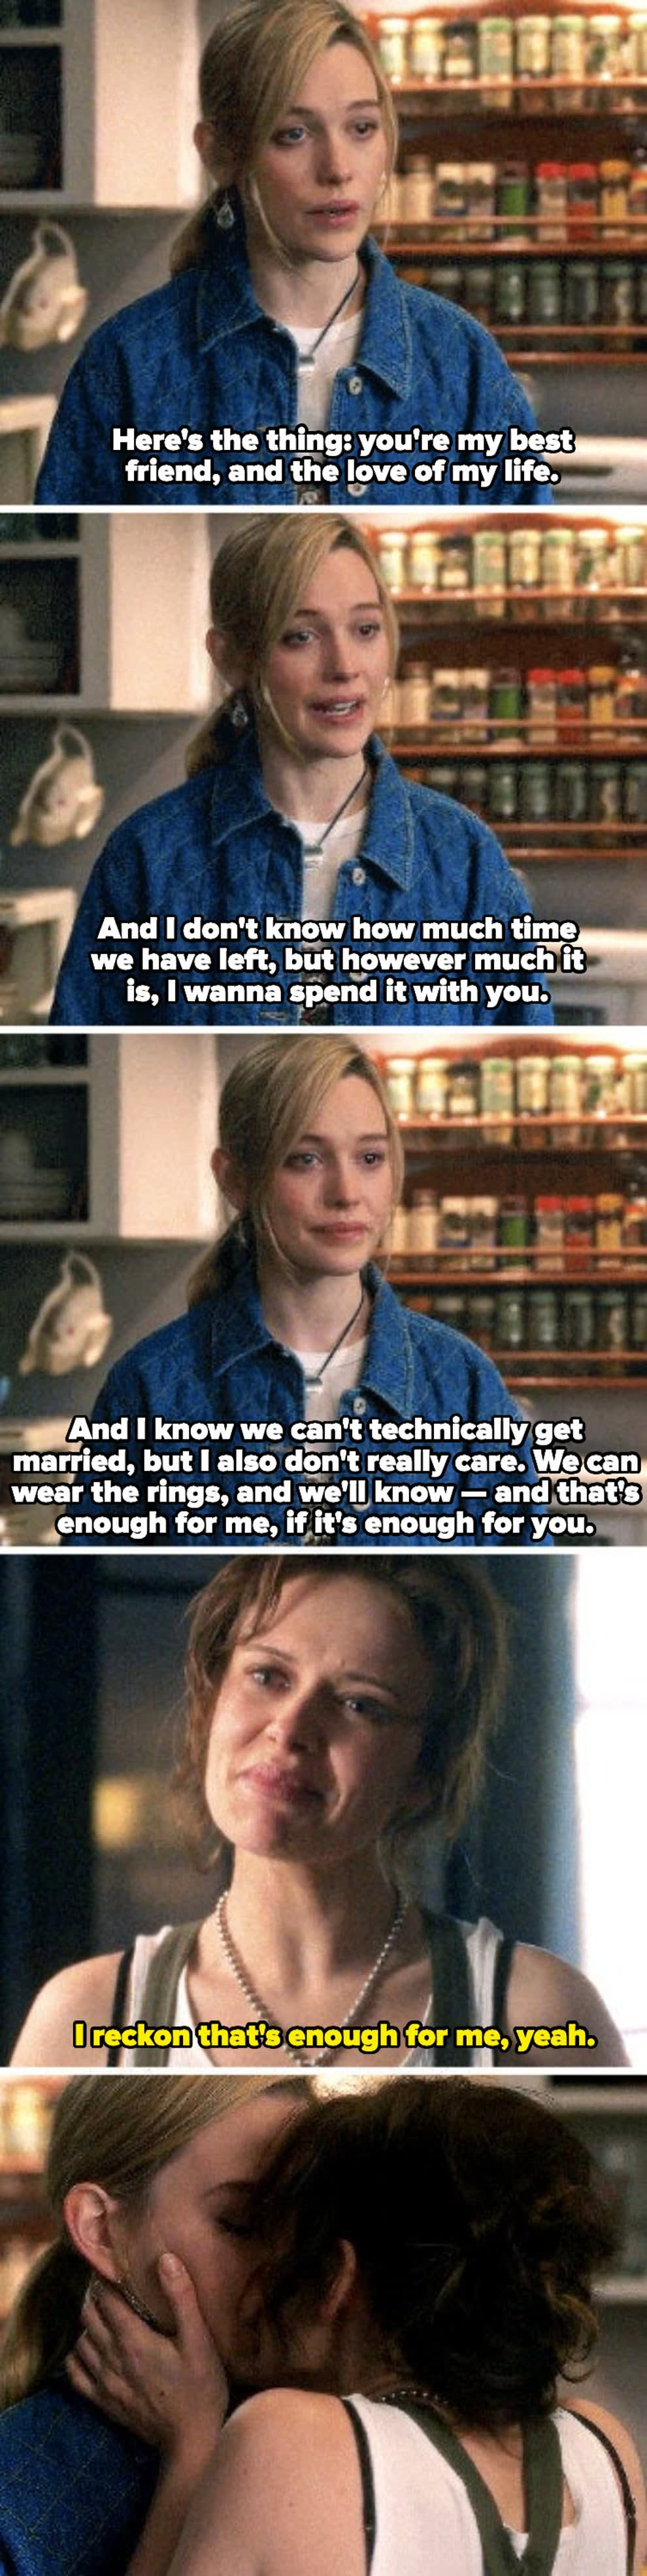 Dani telling Jamie that she wants to be married to her, even if they can't legally be together